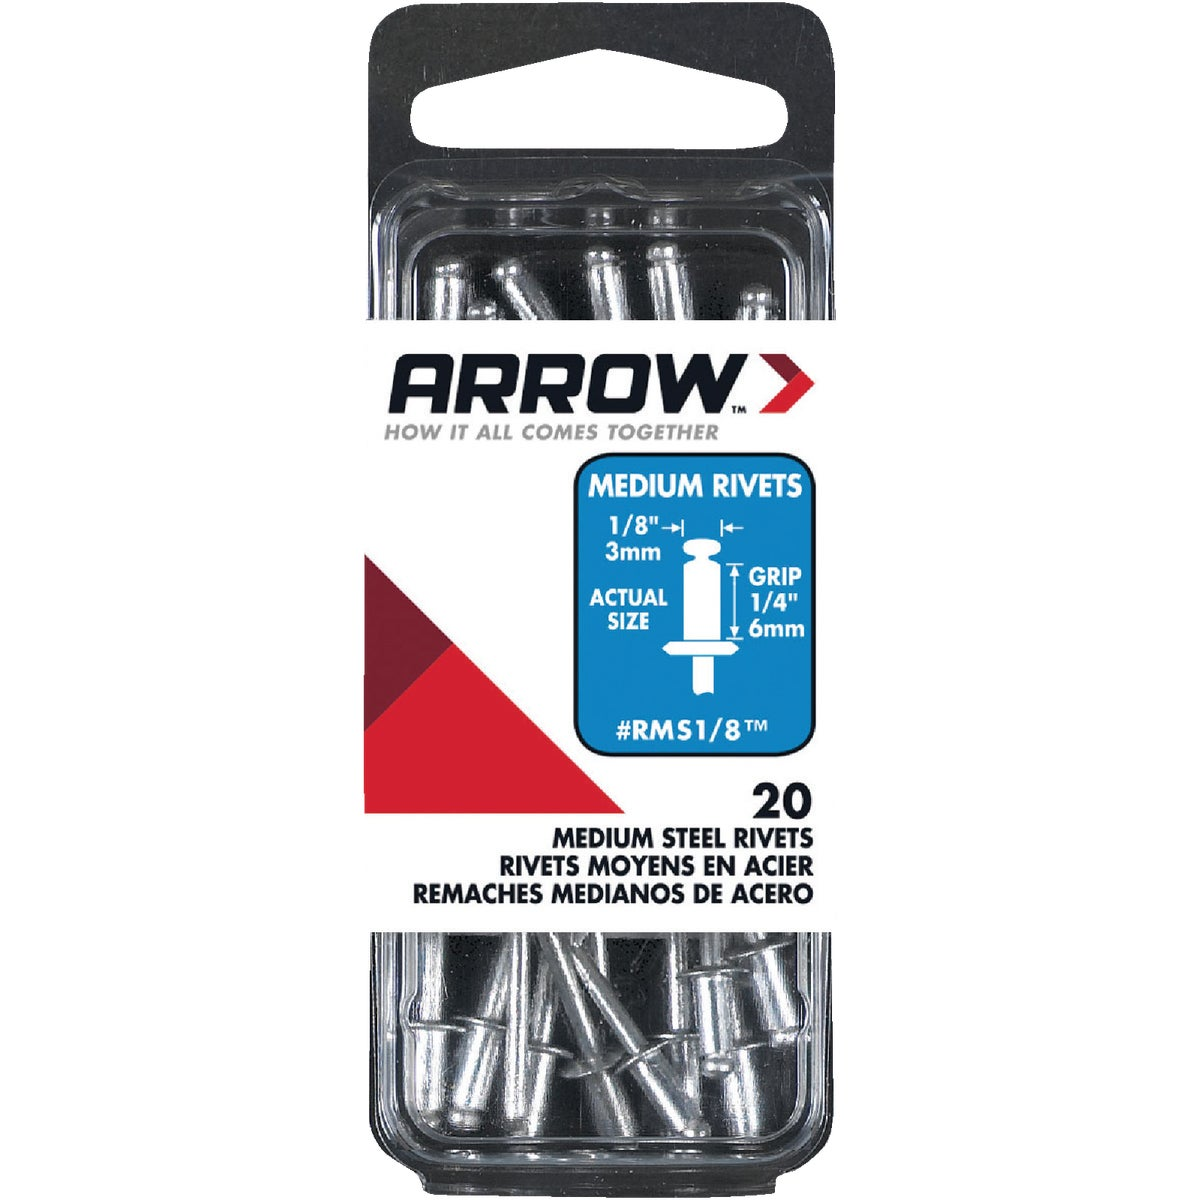 1/8X1/4 STL RIVET - RMS1/8 by Arrow Fastener Co